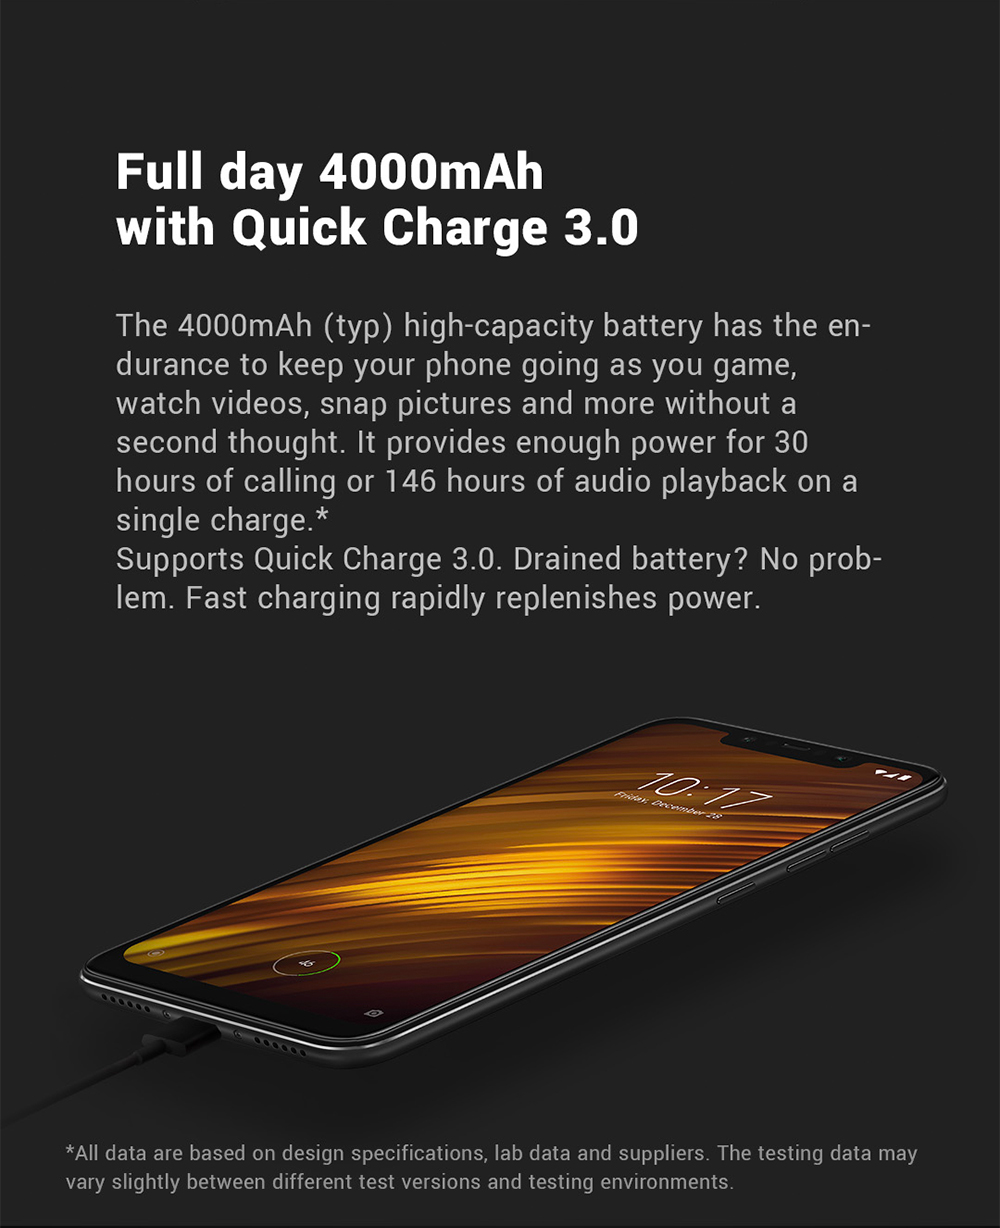 Xiaomi Pocophone F1 4G Phablet 6.18 inch Android 8.1 Qualcomm Snapdragon 845 Octa Core 2.8GHz 6GB RAM 64GB ROM 20.0MP Front Camera Fingerprint Sensor 4000mAh Built-in- Graphite Black